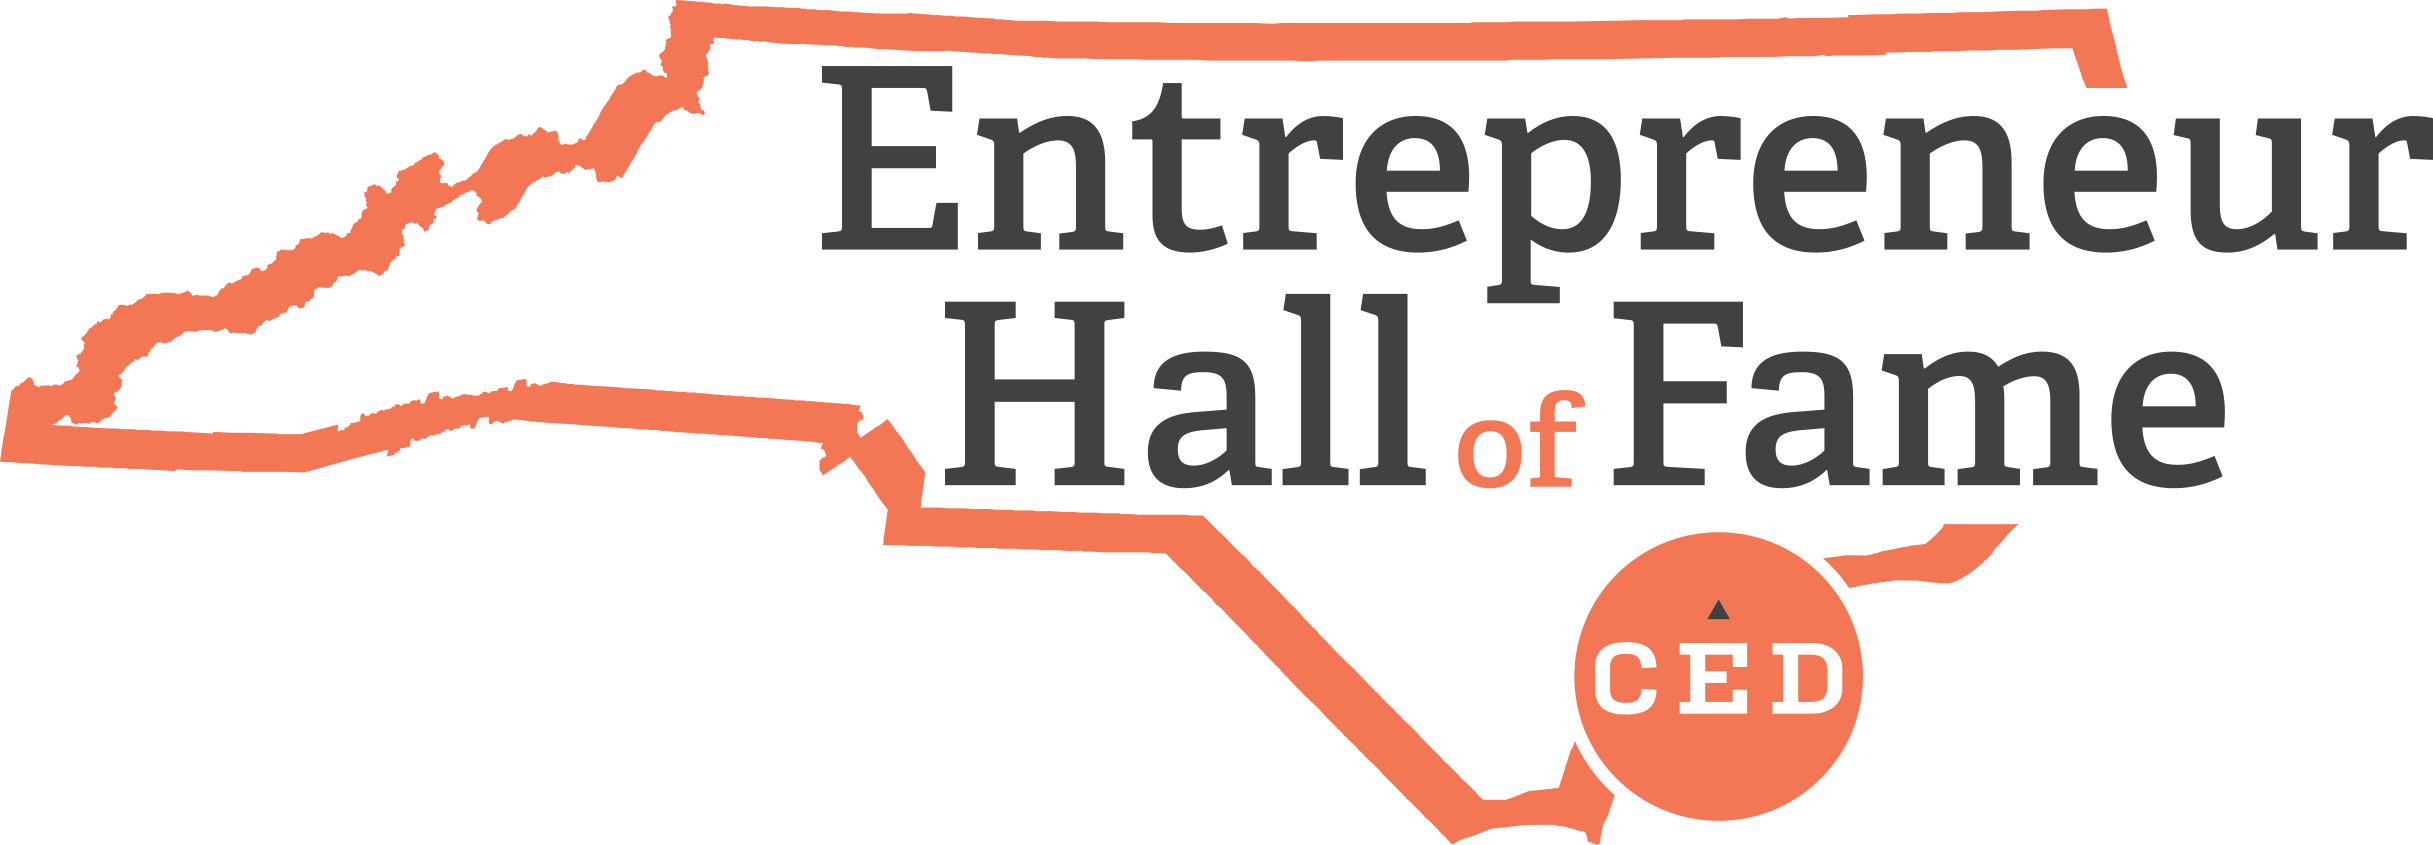 Hall of fame ced. Growth clipart successful entrepreneur